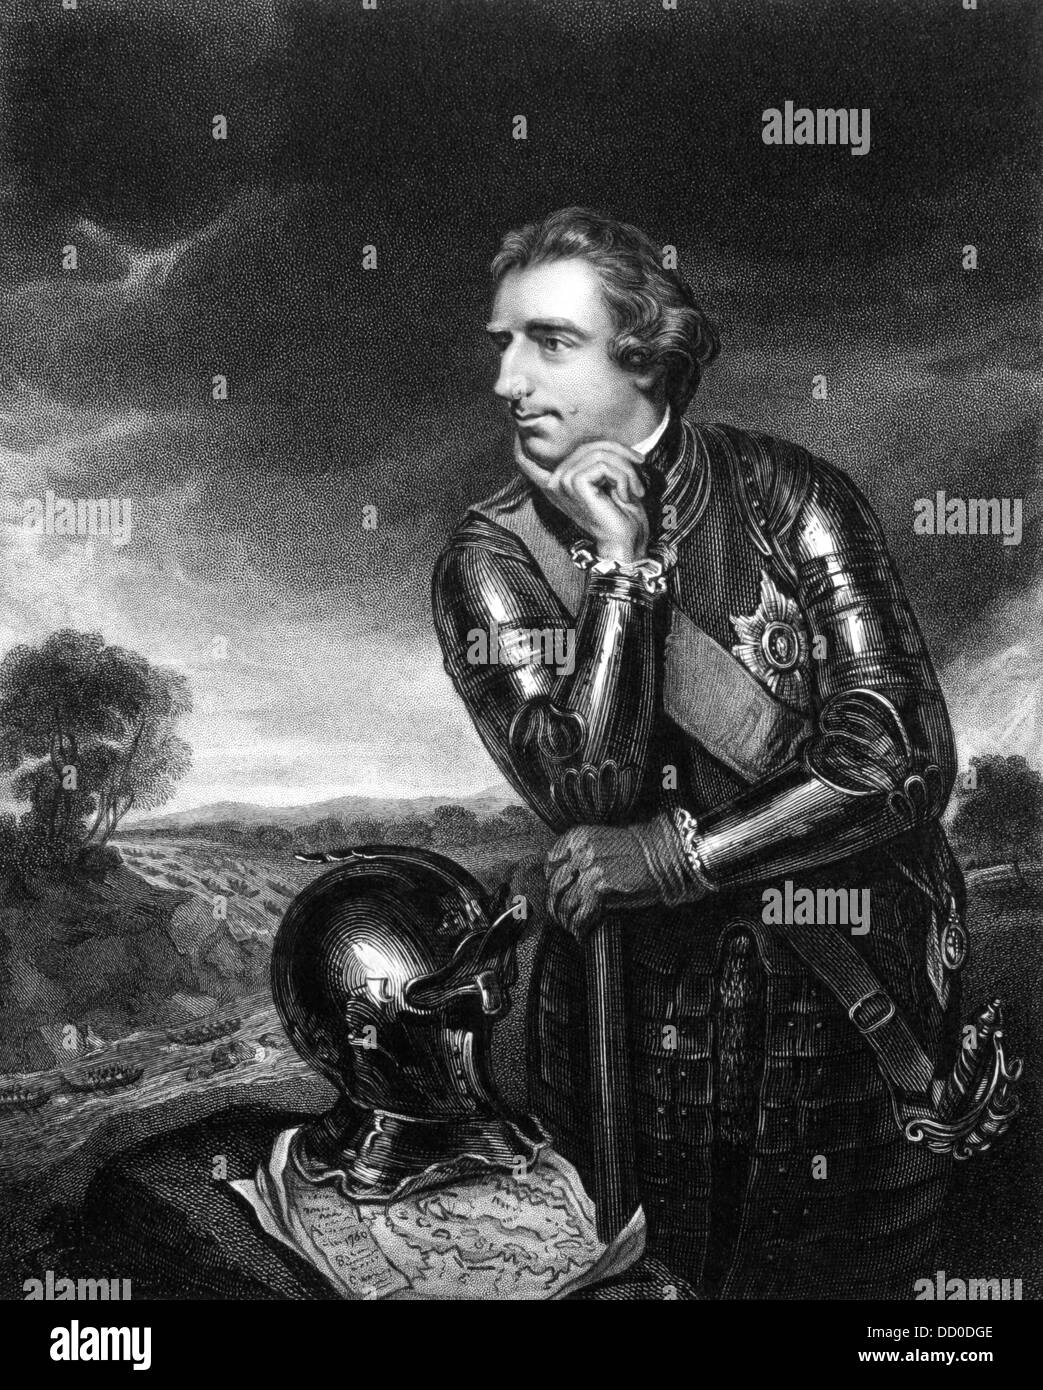 Jeffery Amherst, 1st Baron Amherst (1717-1797) on engraving from 1834. Served as an officer in the British Army. Stock Photo